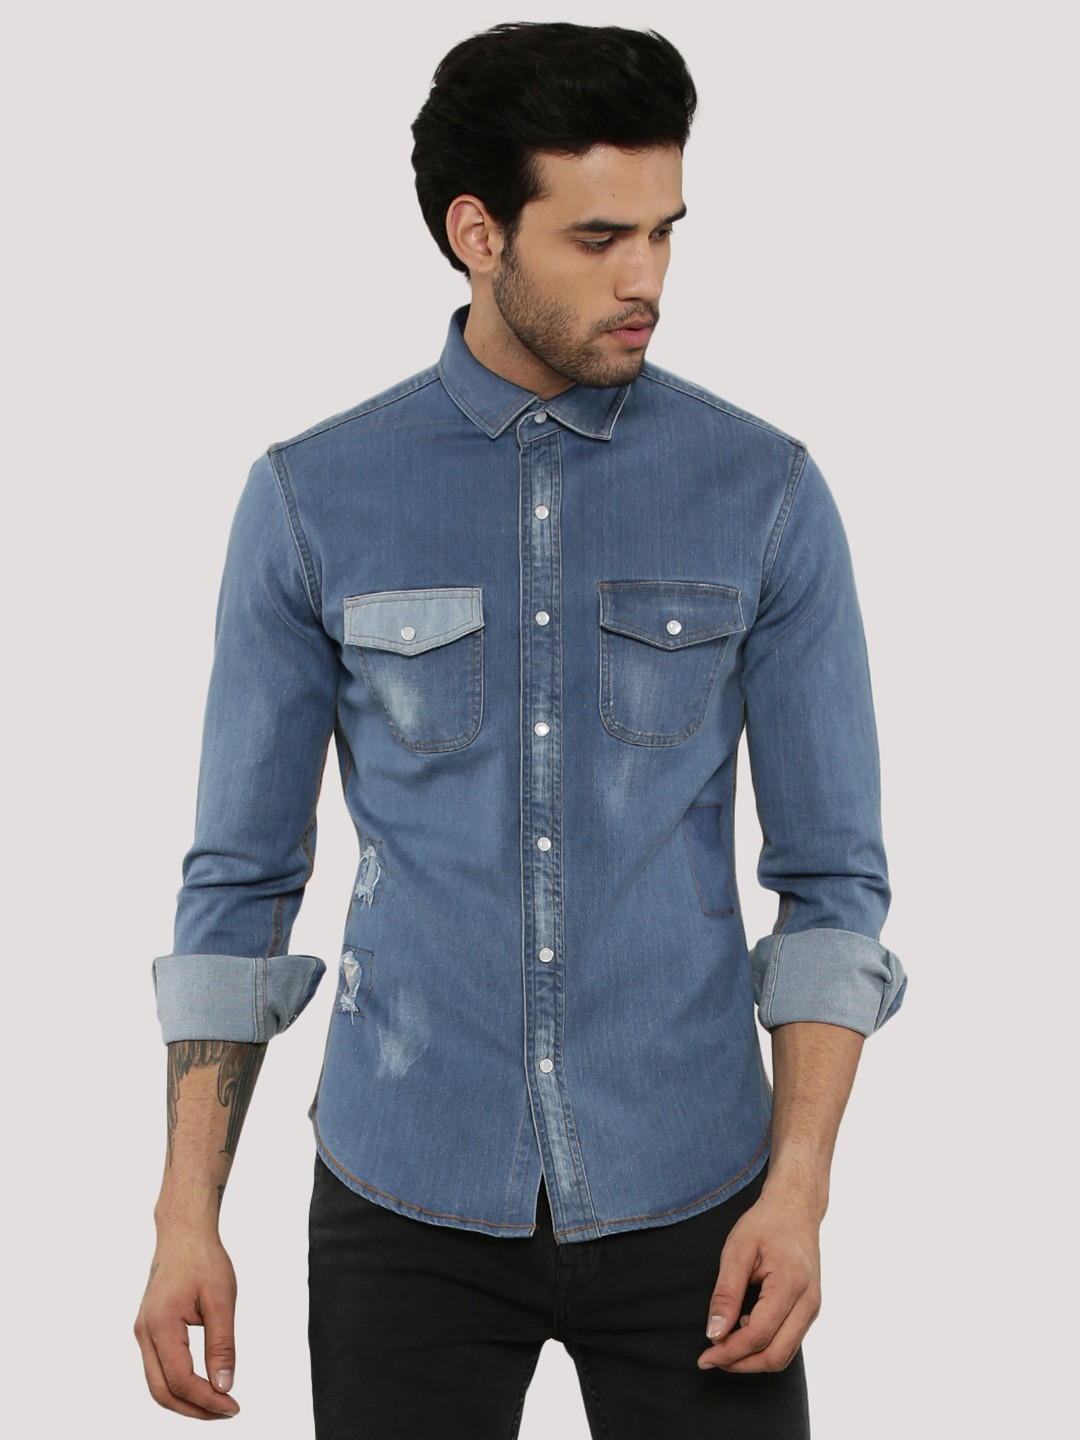 Mens Denim Shirts A go-to for quintessential casual, denim exudes an effortless ease with laid-back appeal. Put together an easy look with our selection of denim shirts for men.